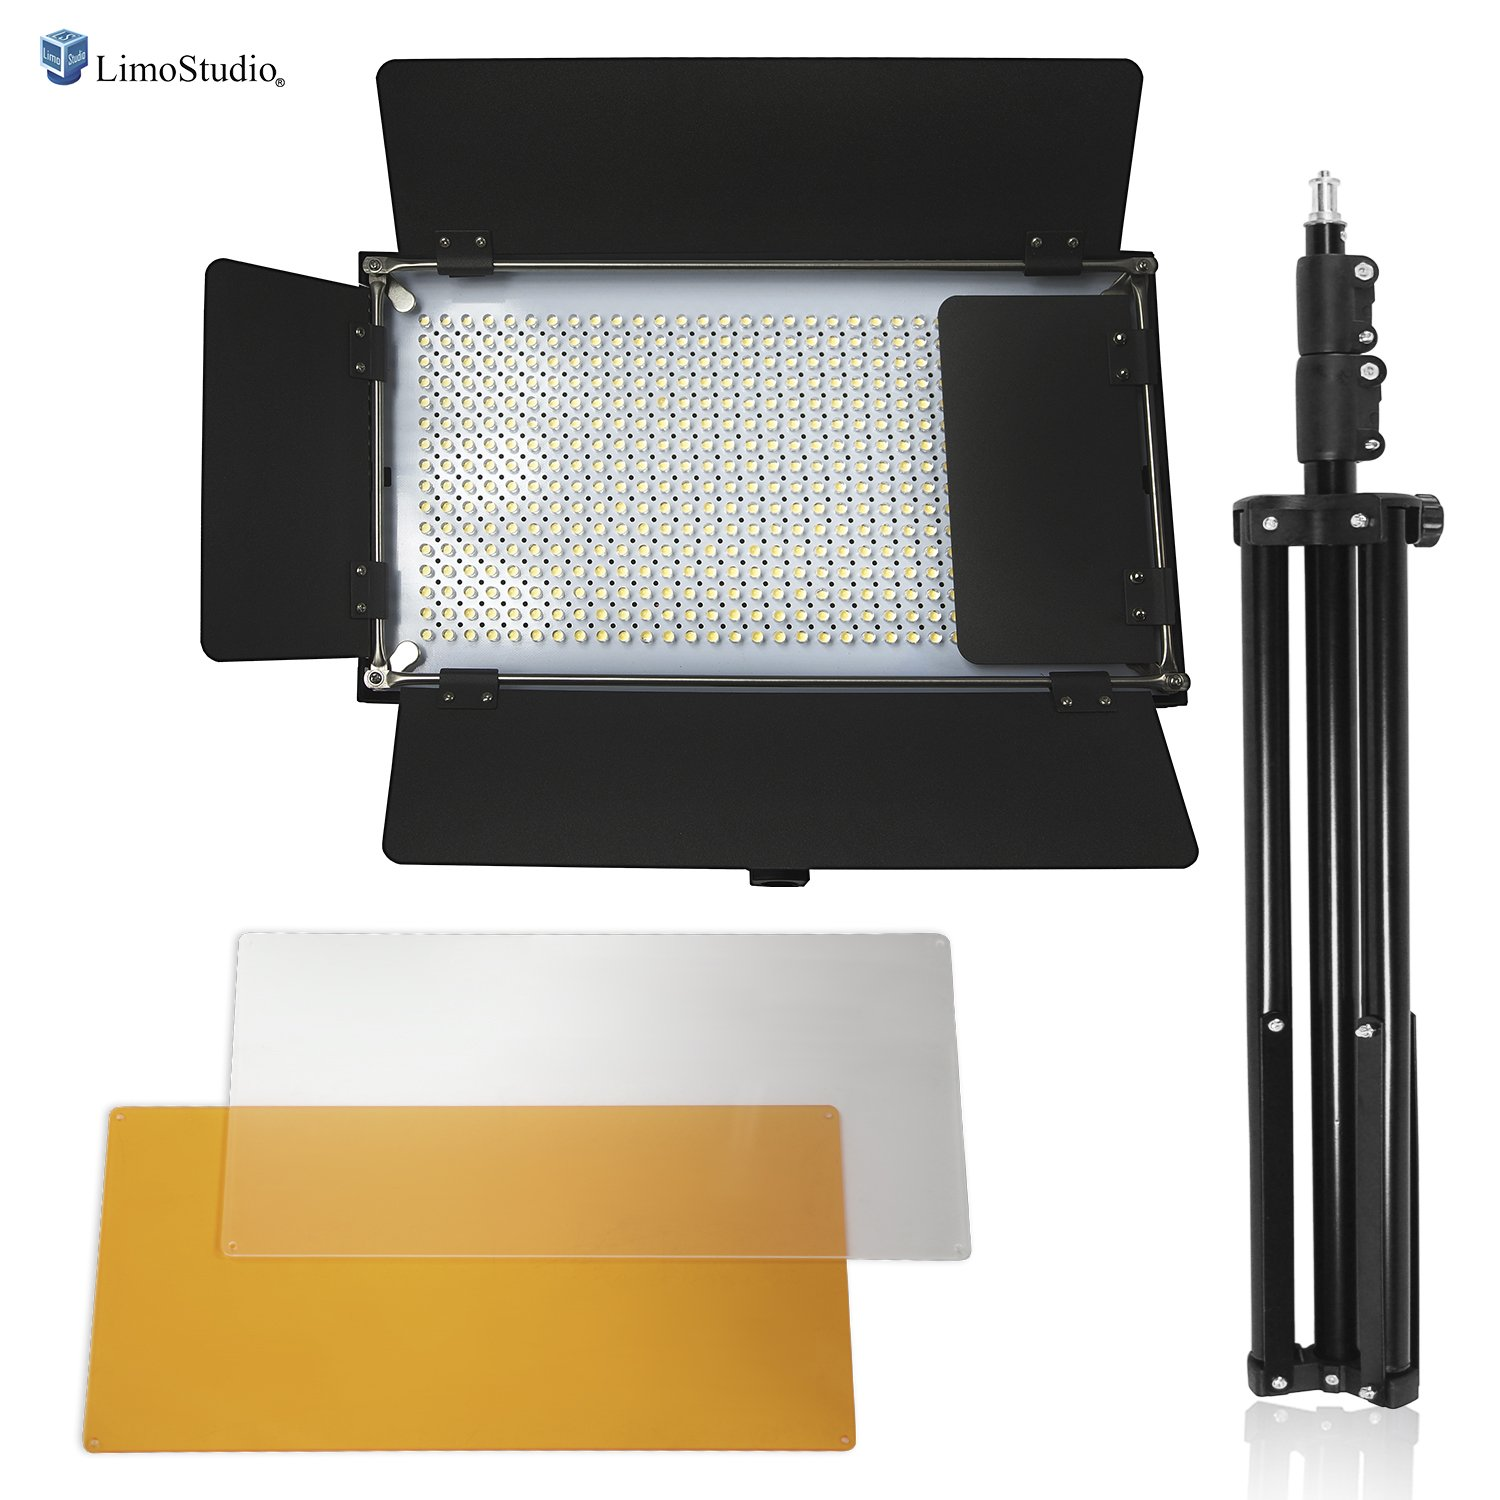 LimoStudio Adjustable LED Barn Door Light Panel with Light Stand Tripod, Selectable Lighting Zone and Dimmable Color Temperature Control with Gel Filters, Professional Photo Video Shoots, AGG2550